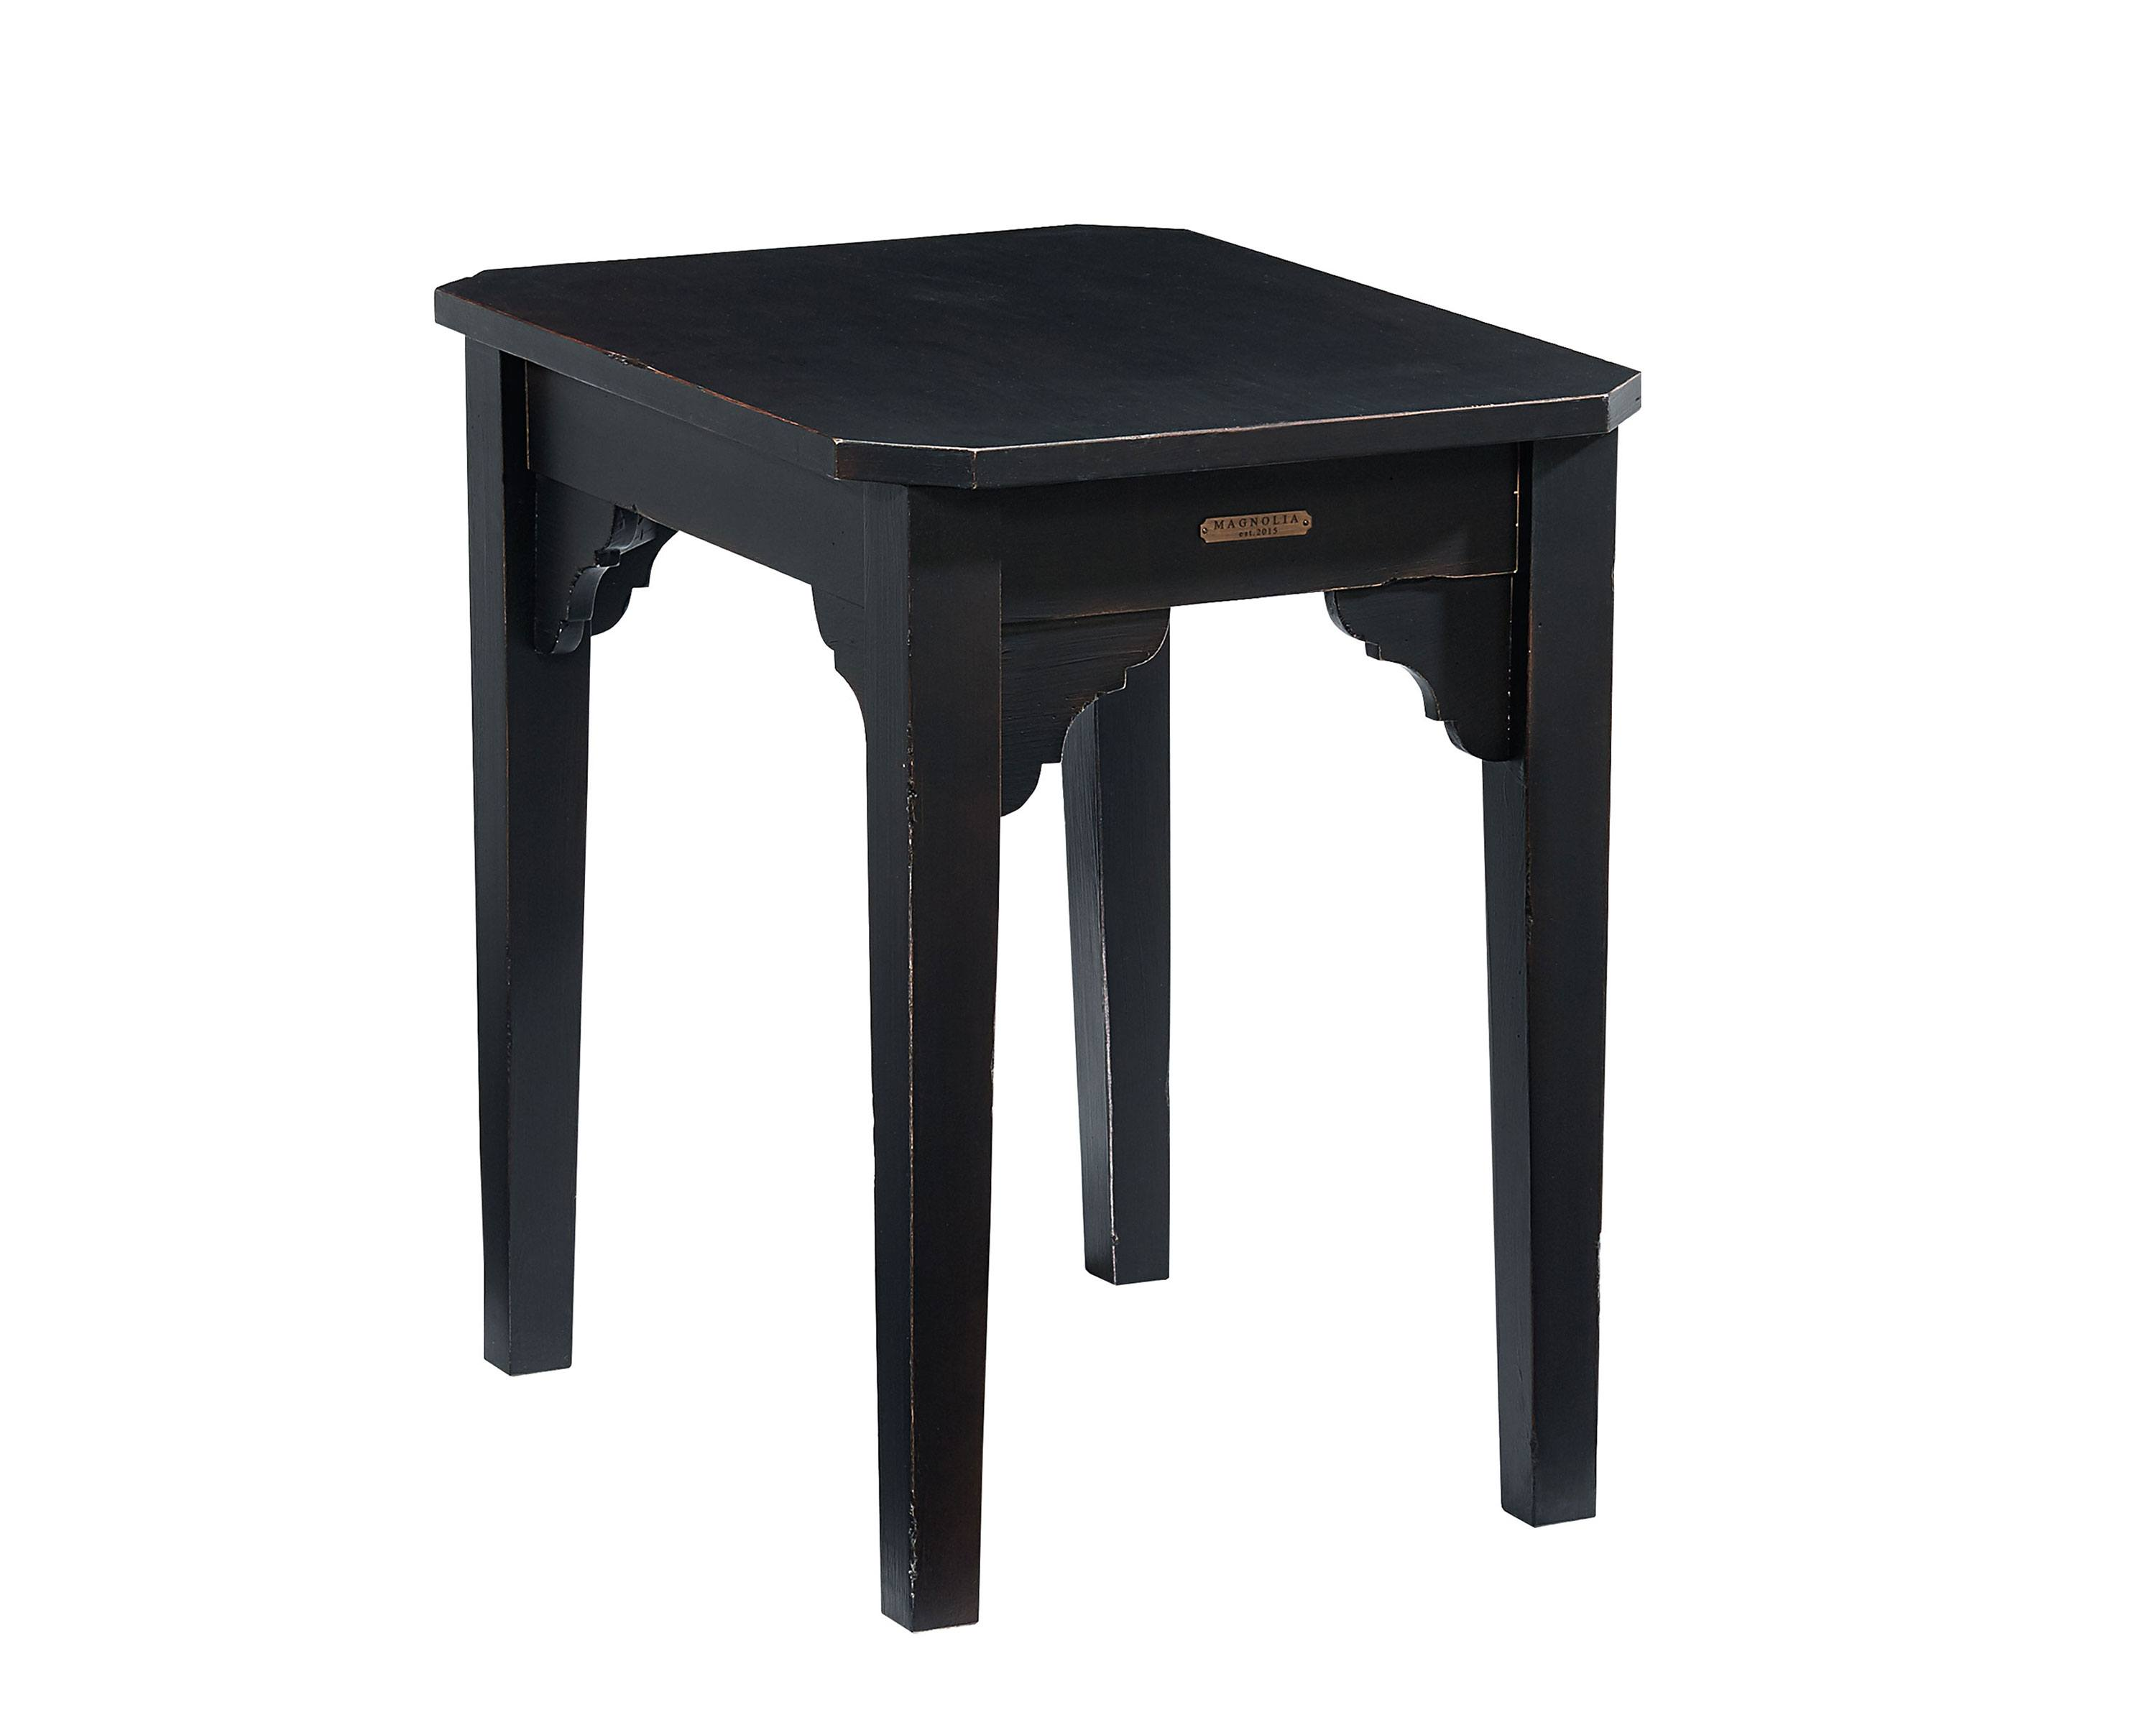 bracket end table magnolia home accent farmhouse our will old fashioned charm anywhere you put with its cut out corner brackets clipped top corners and casual black teen desk